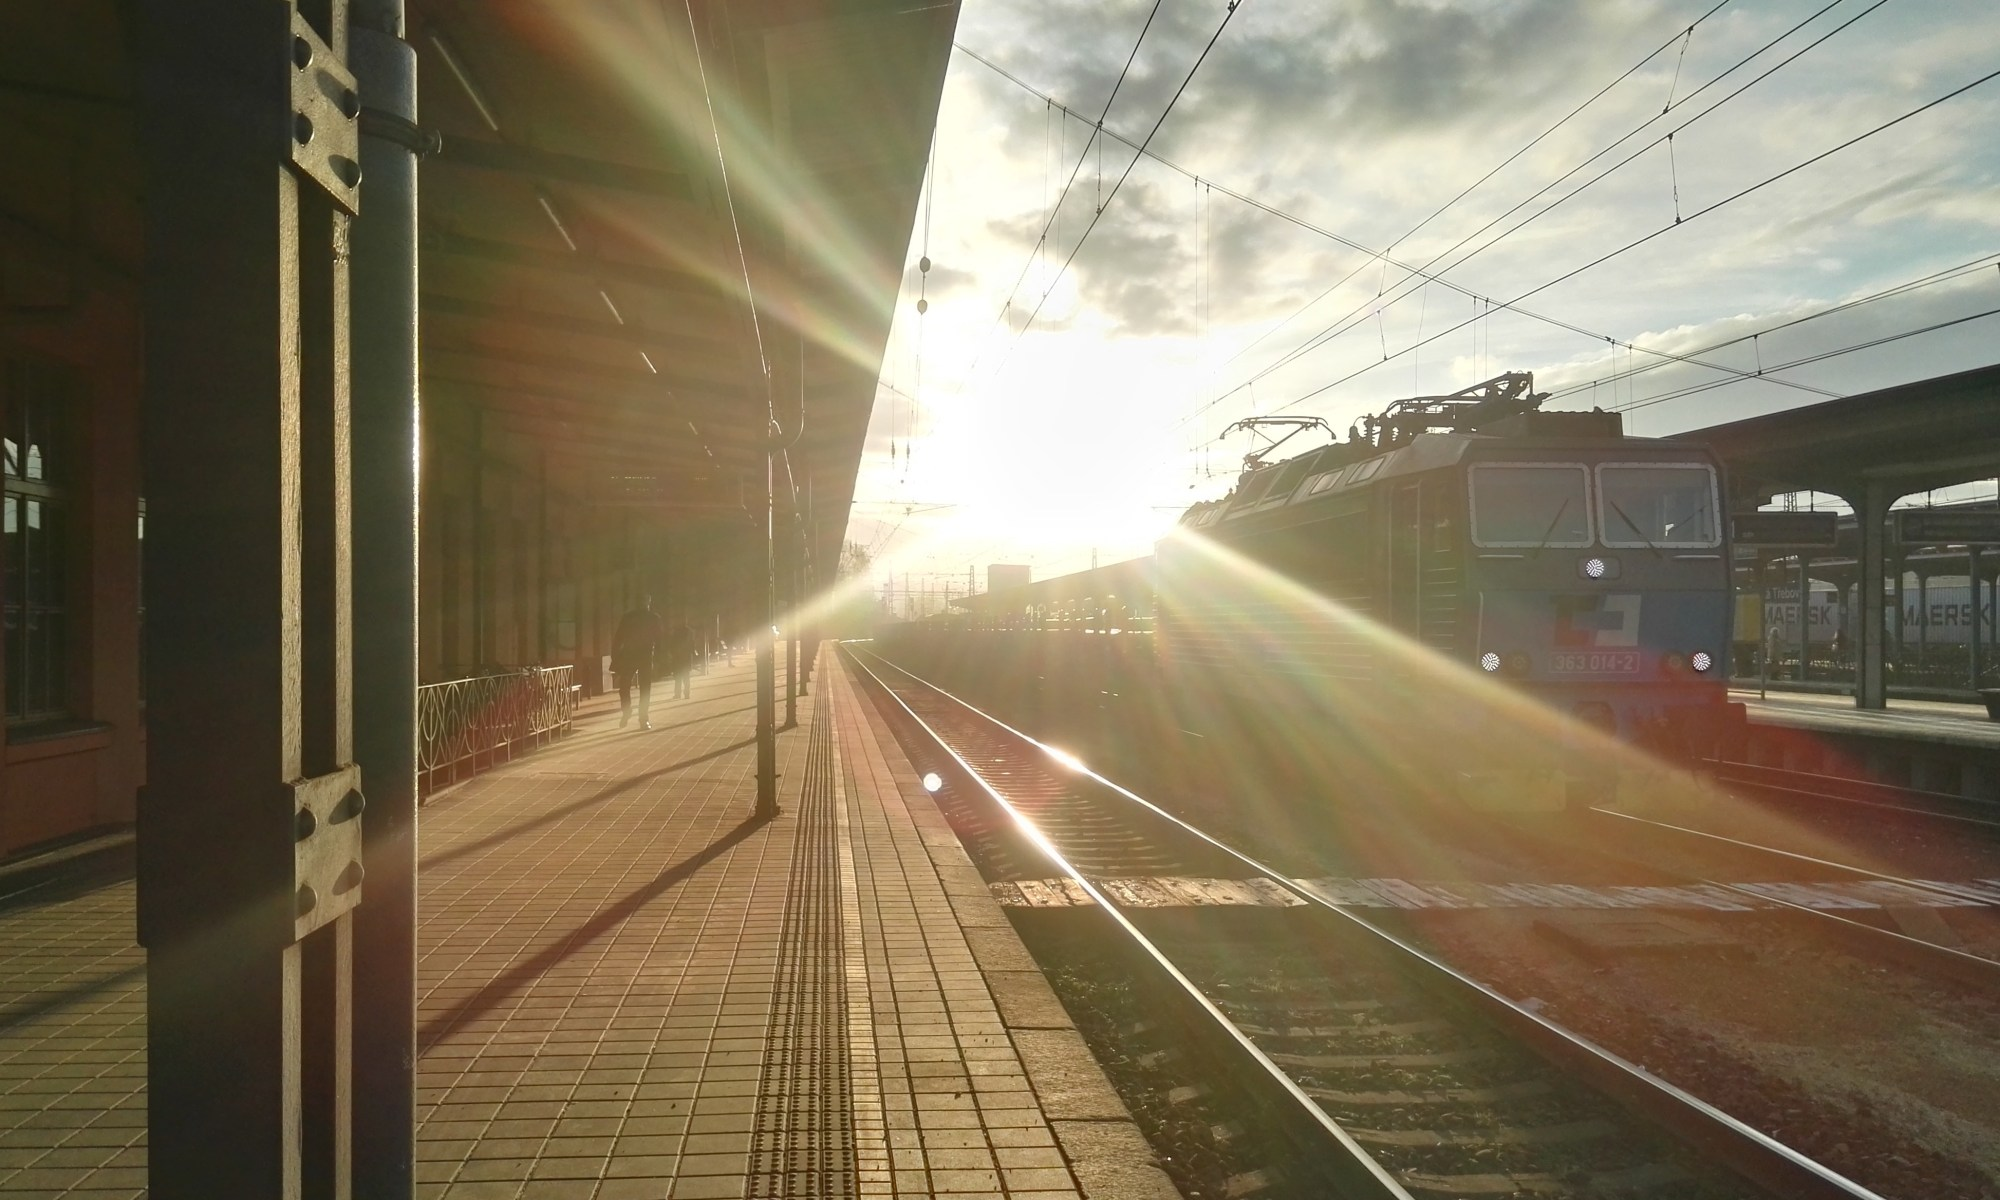 Morning at Ceska Trebova train station